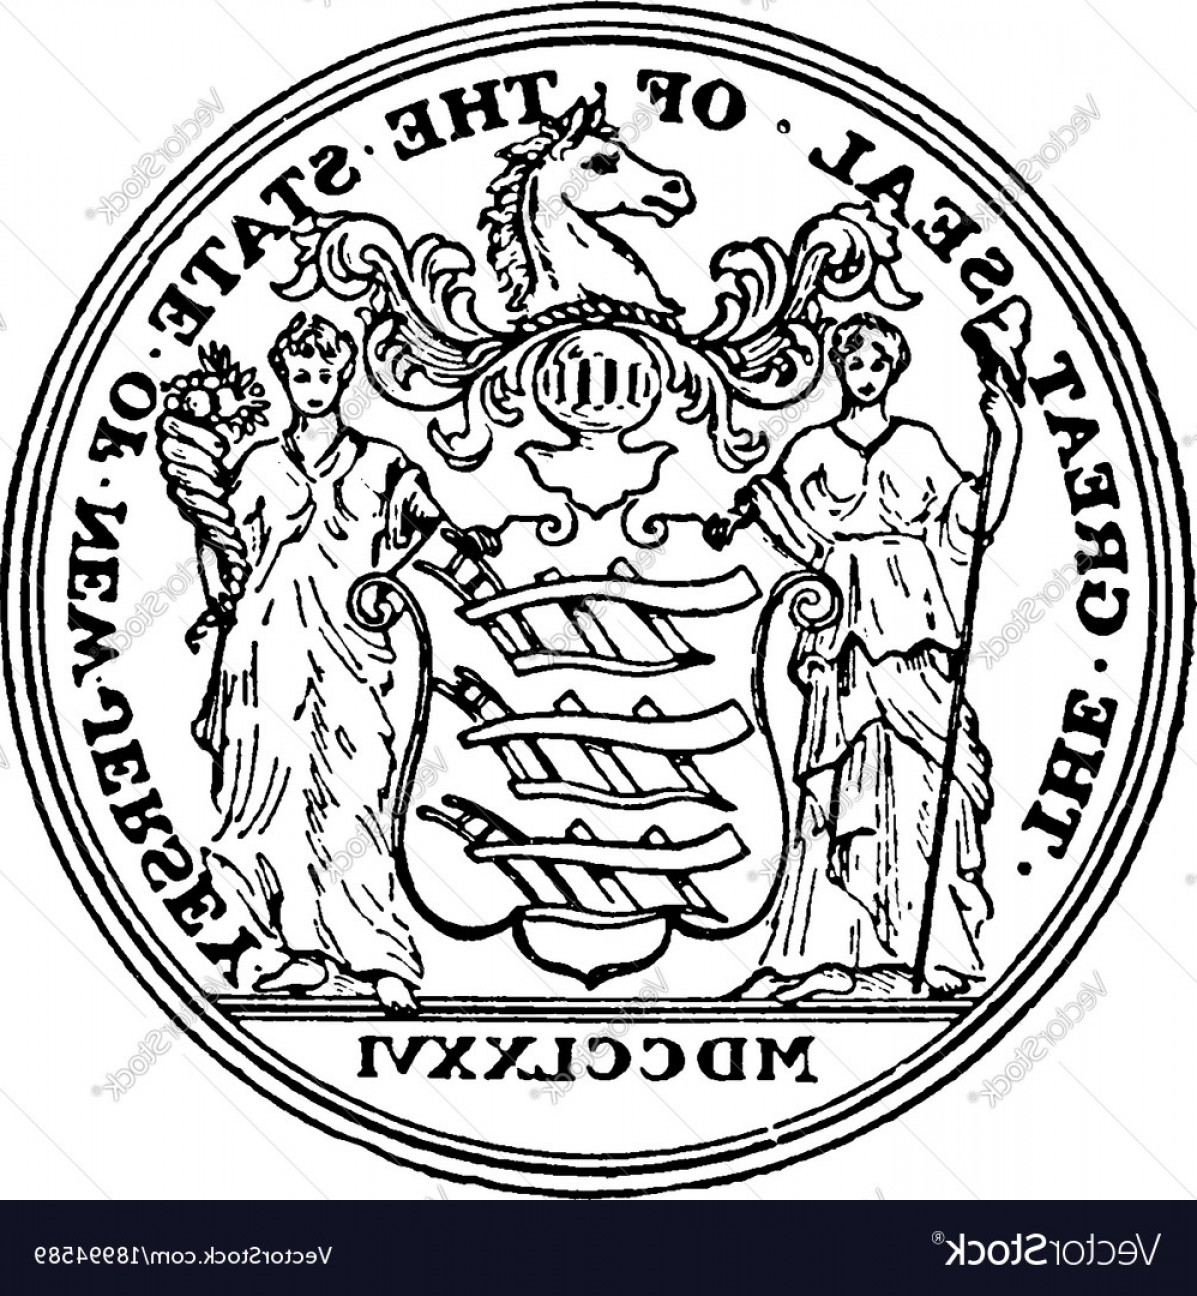 California Seal Vector EPS: The Great Seal Of The State Of New Jersey Vintage Vector